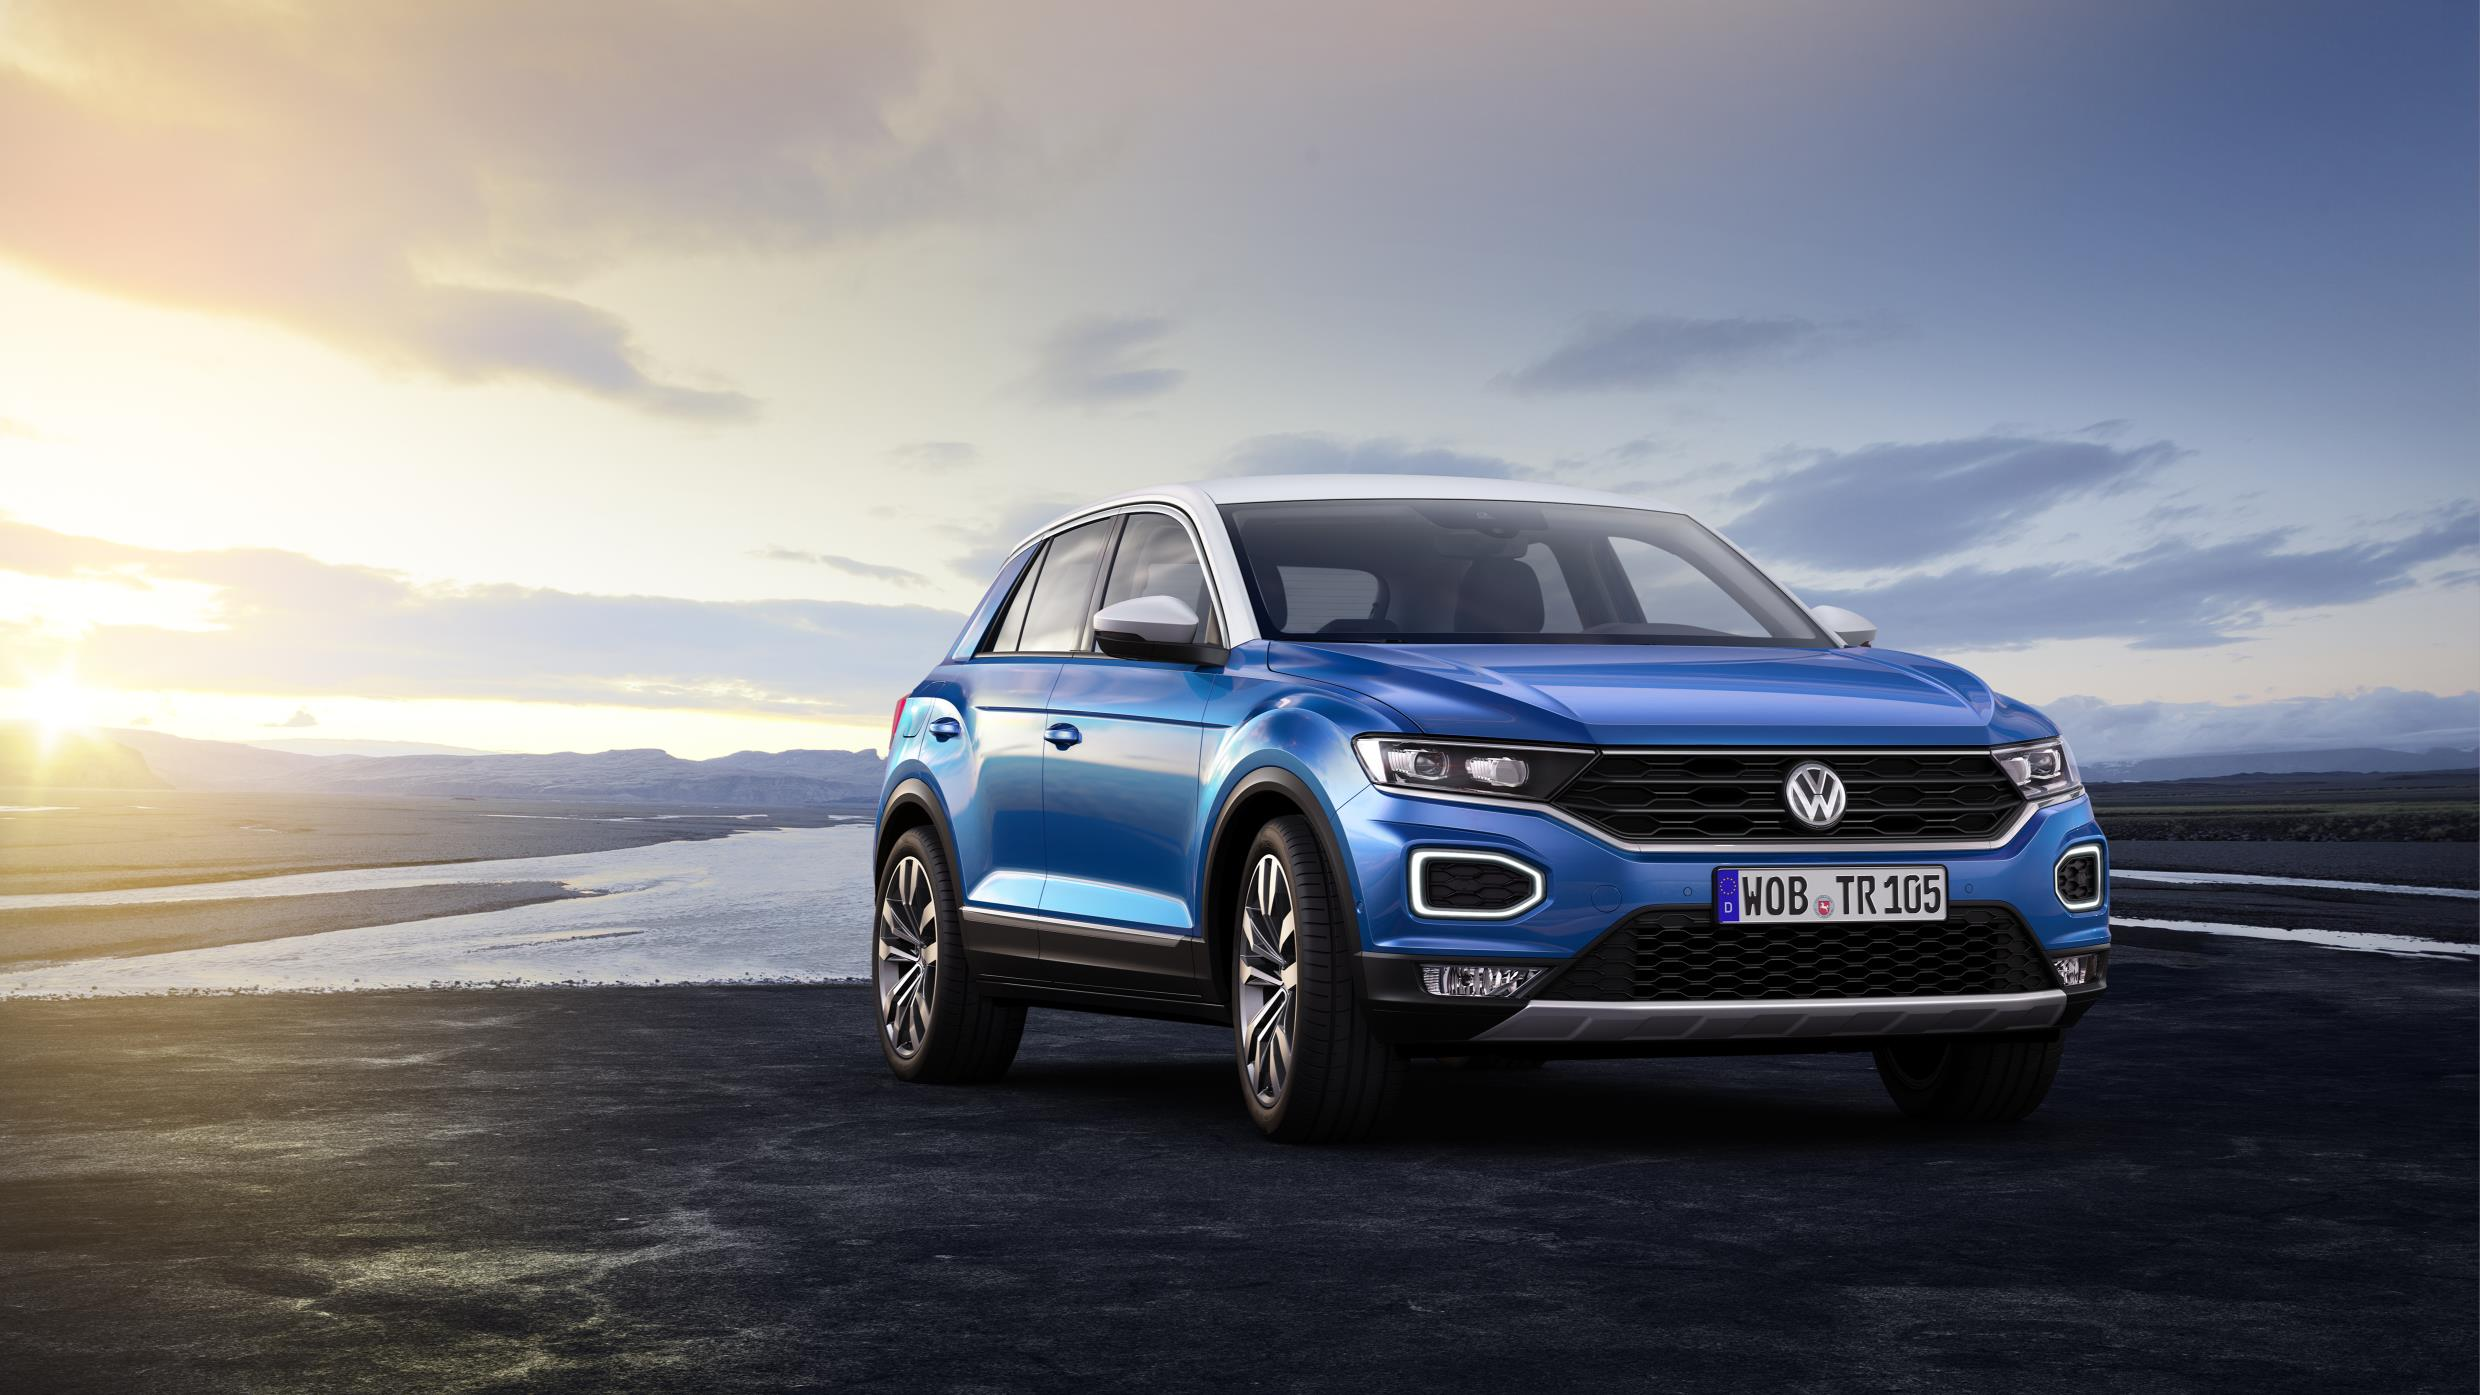 leasing lease york coupons prices nj on jersey great and best checkers toxe for car deals all in leases volkswagen wantalease them pyx the new city com november tiguan searches brings